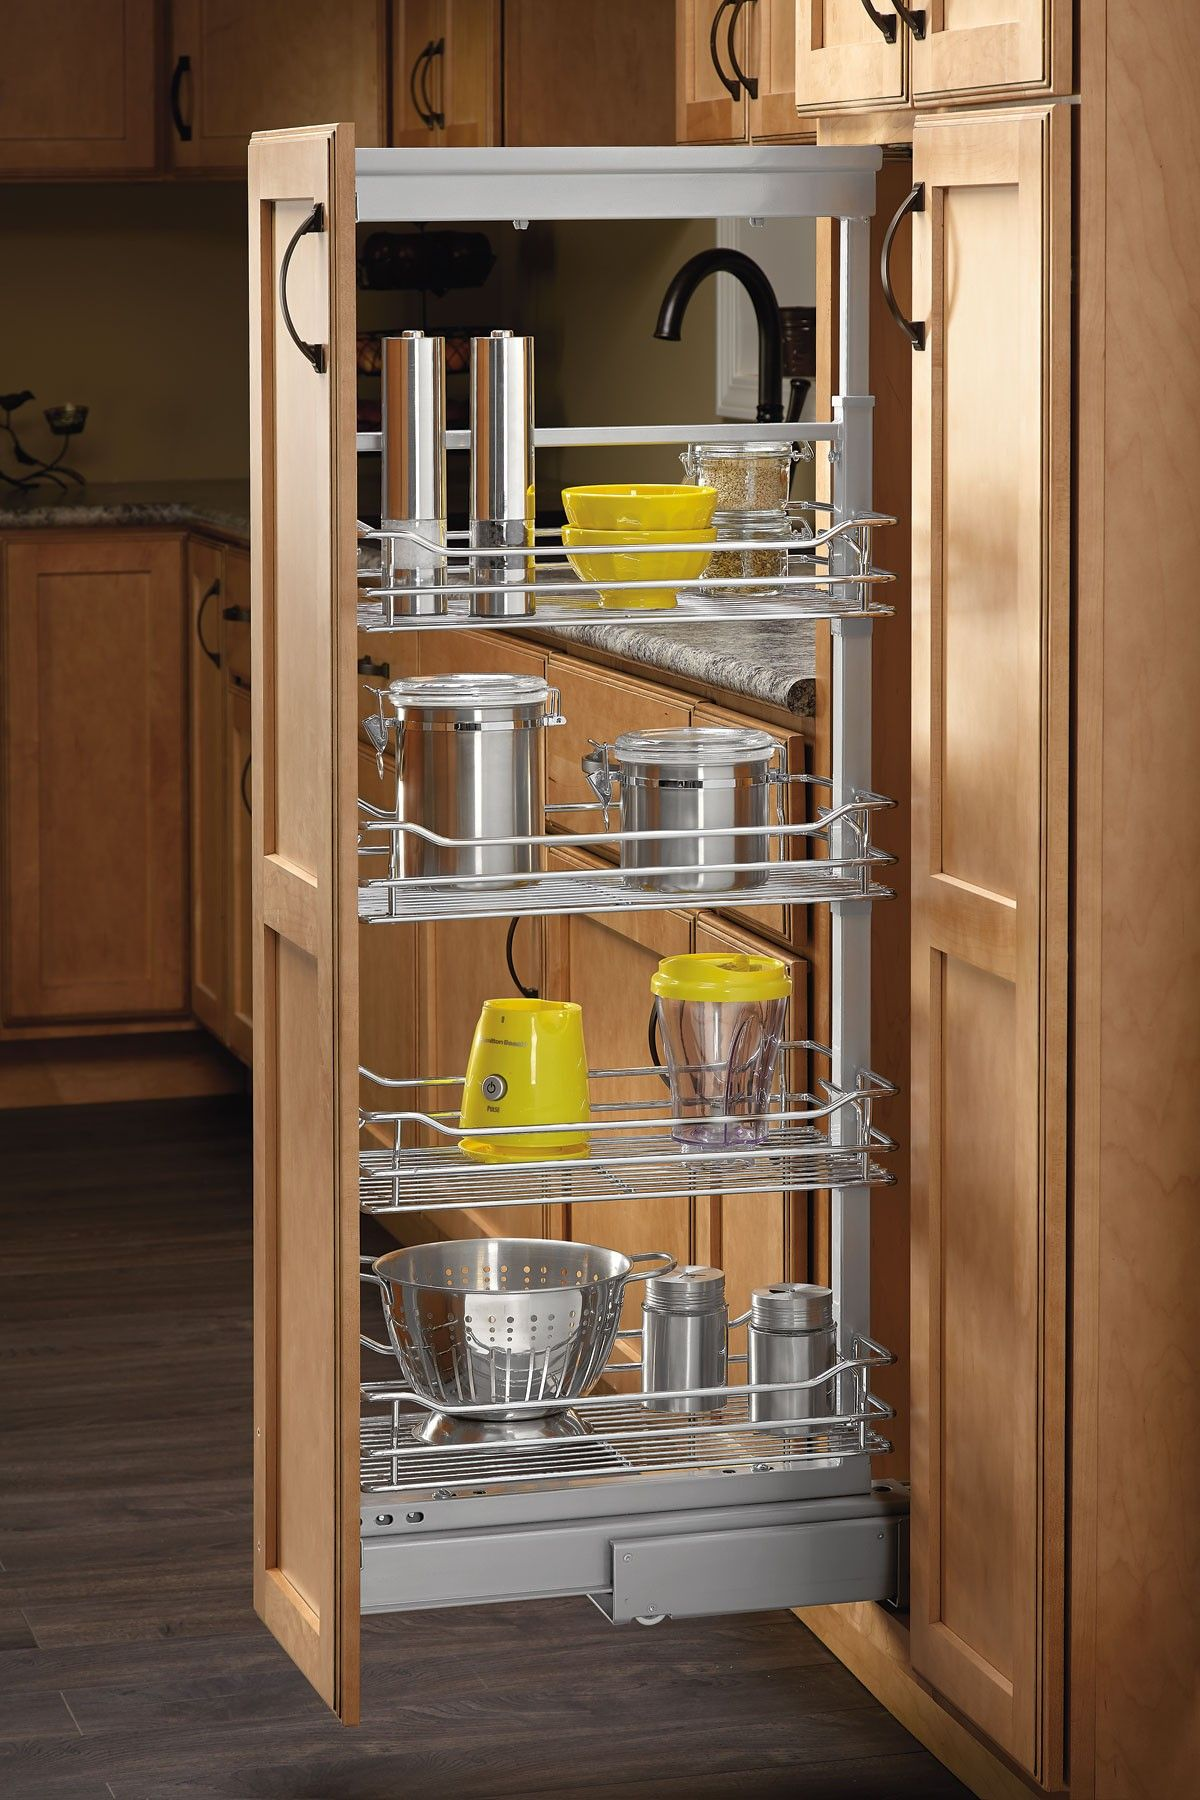 20 5 8 Pull Out Pantry Chrome With Images Rev A Shelf Pull Out Pantry Pantry Cabinet